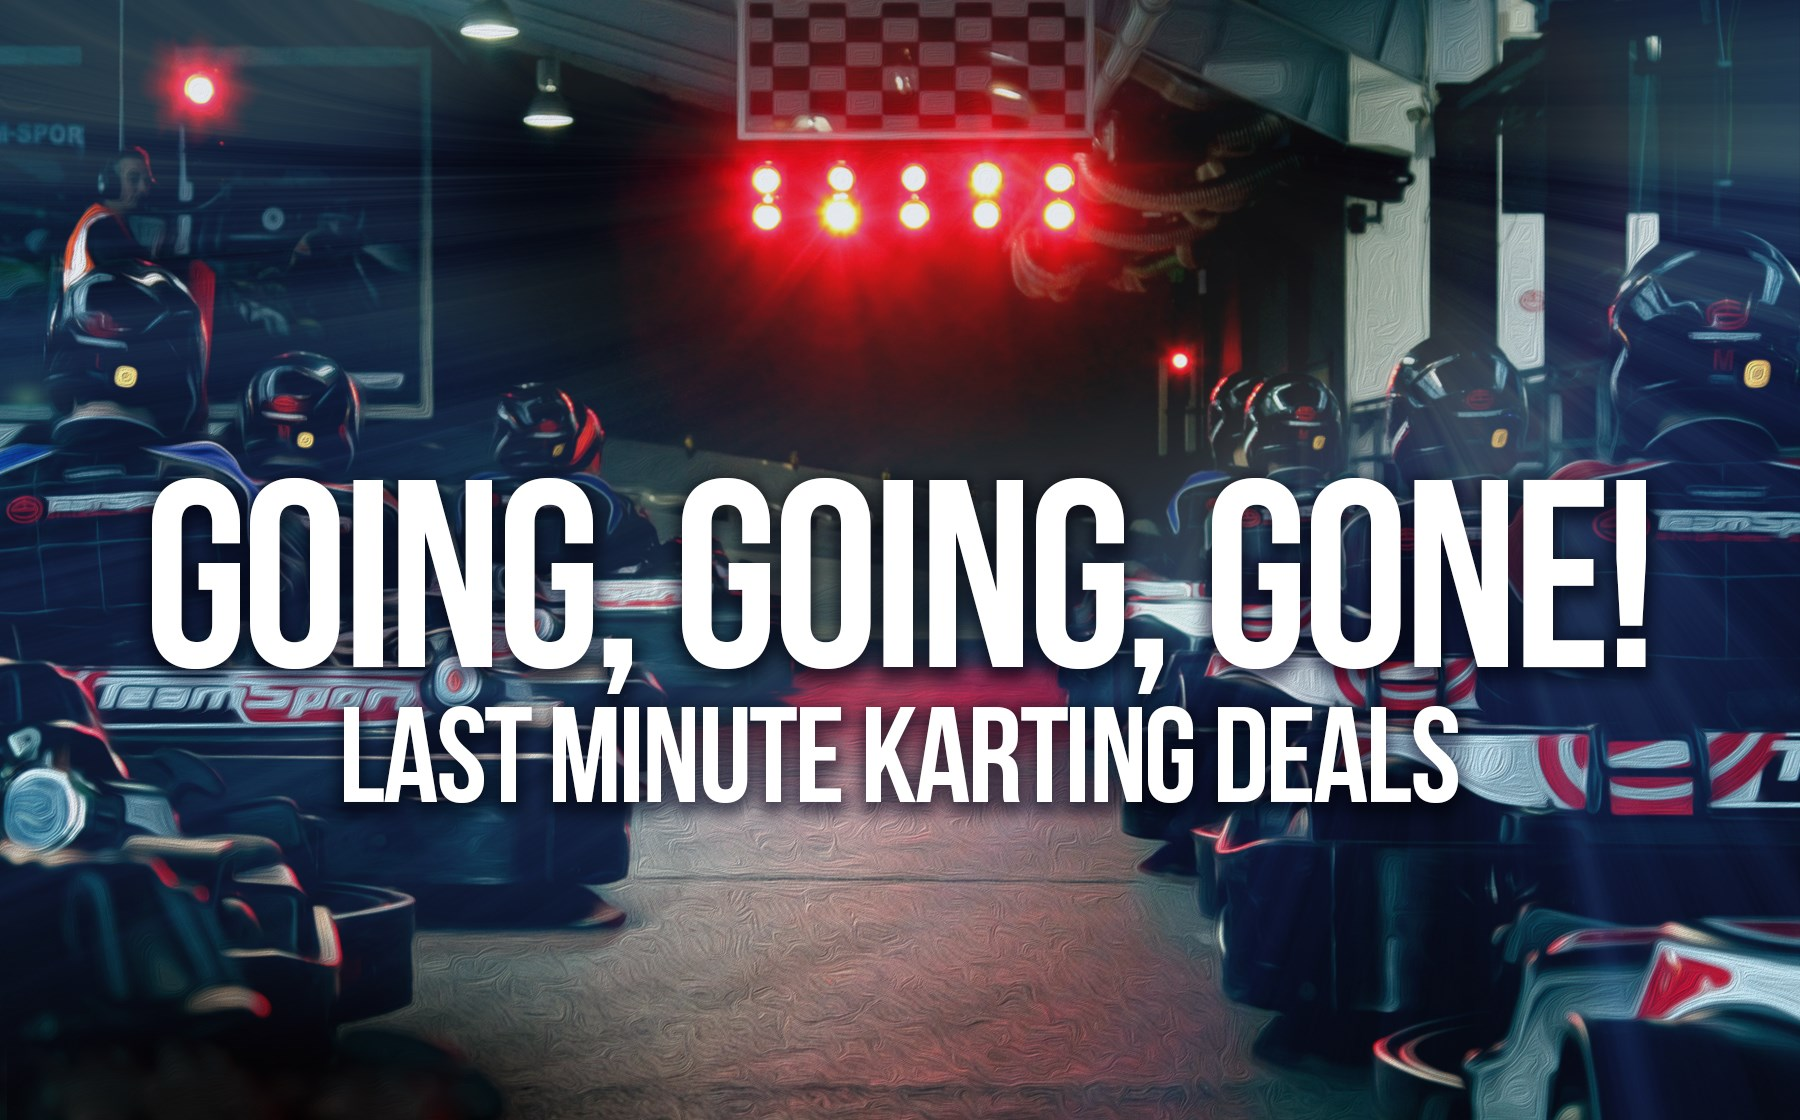 GO KARTING OFFERS - Going Going Gone!